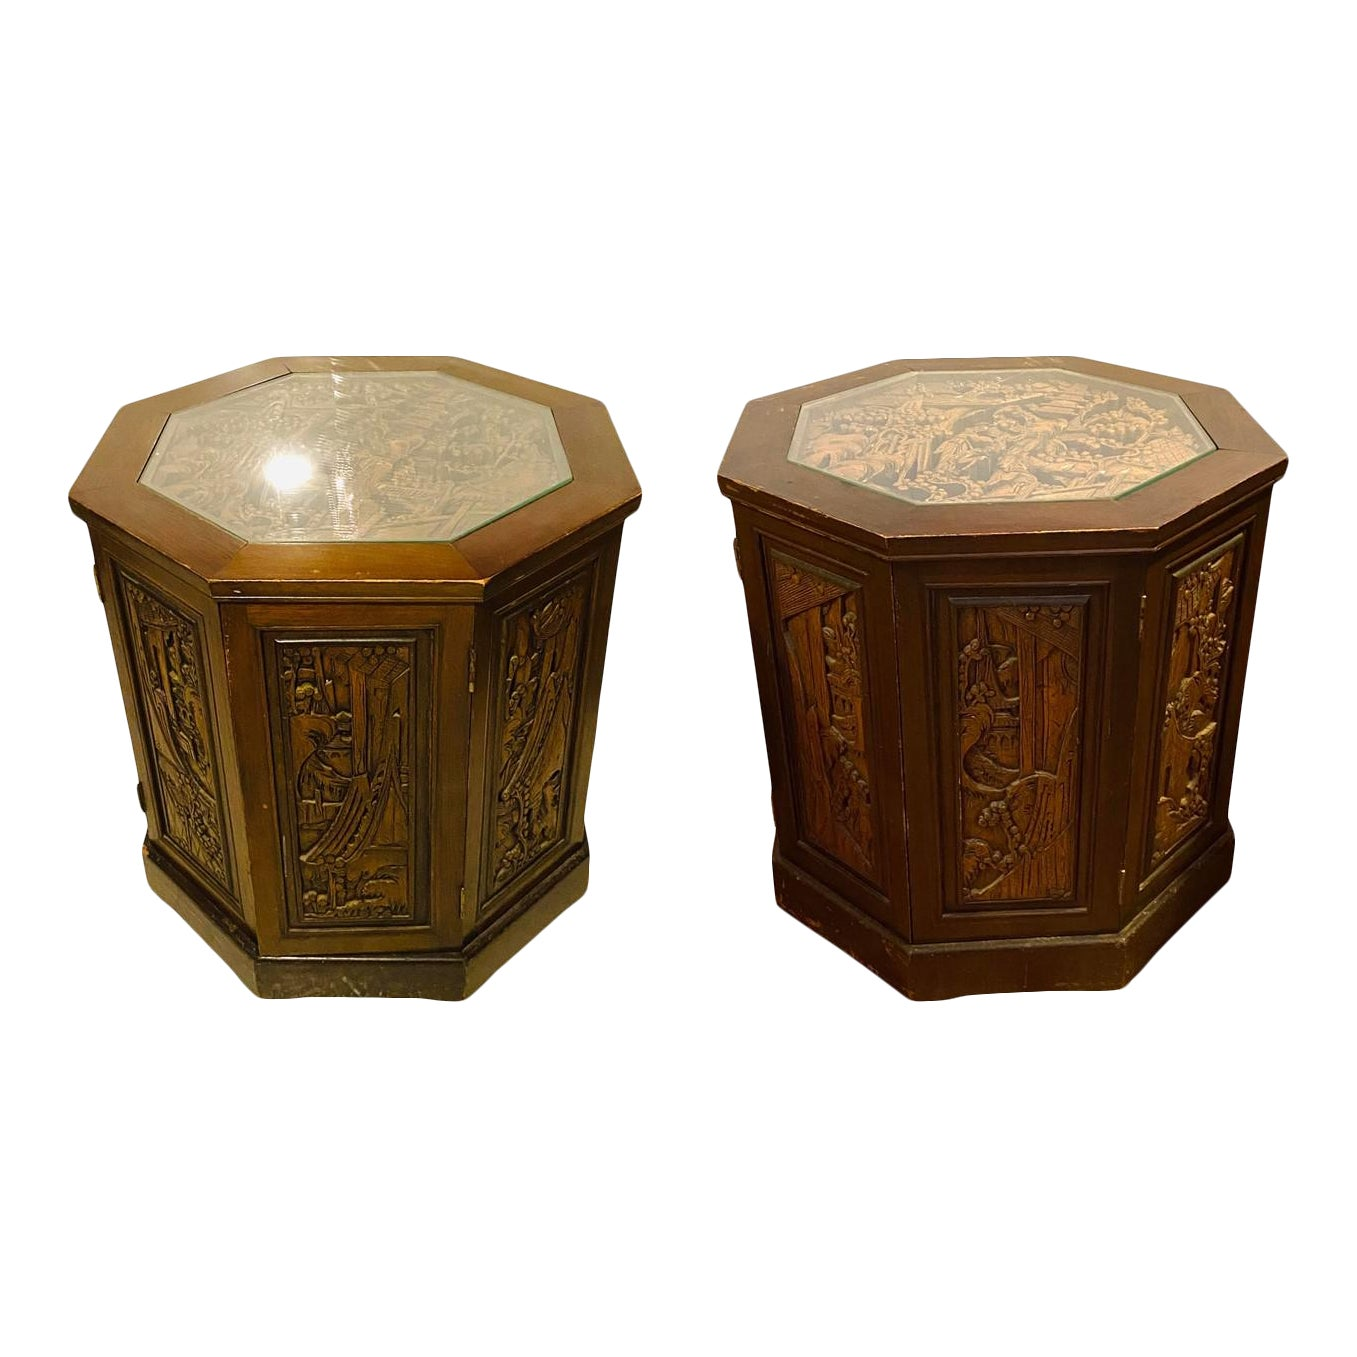 Ornate Asian Carved Wood Hexagon Cabinets Tables Glass Top - Pair of 2